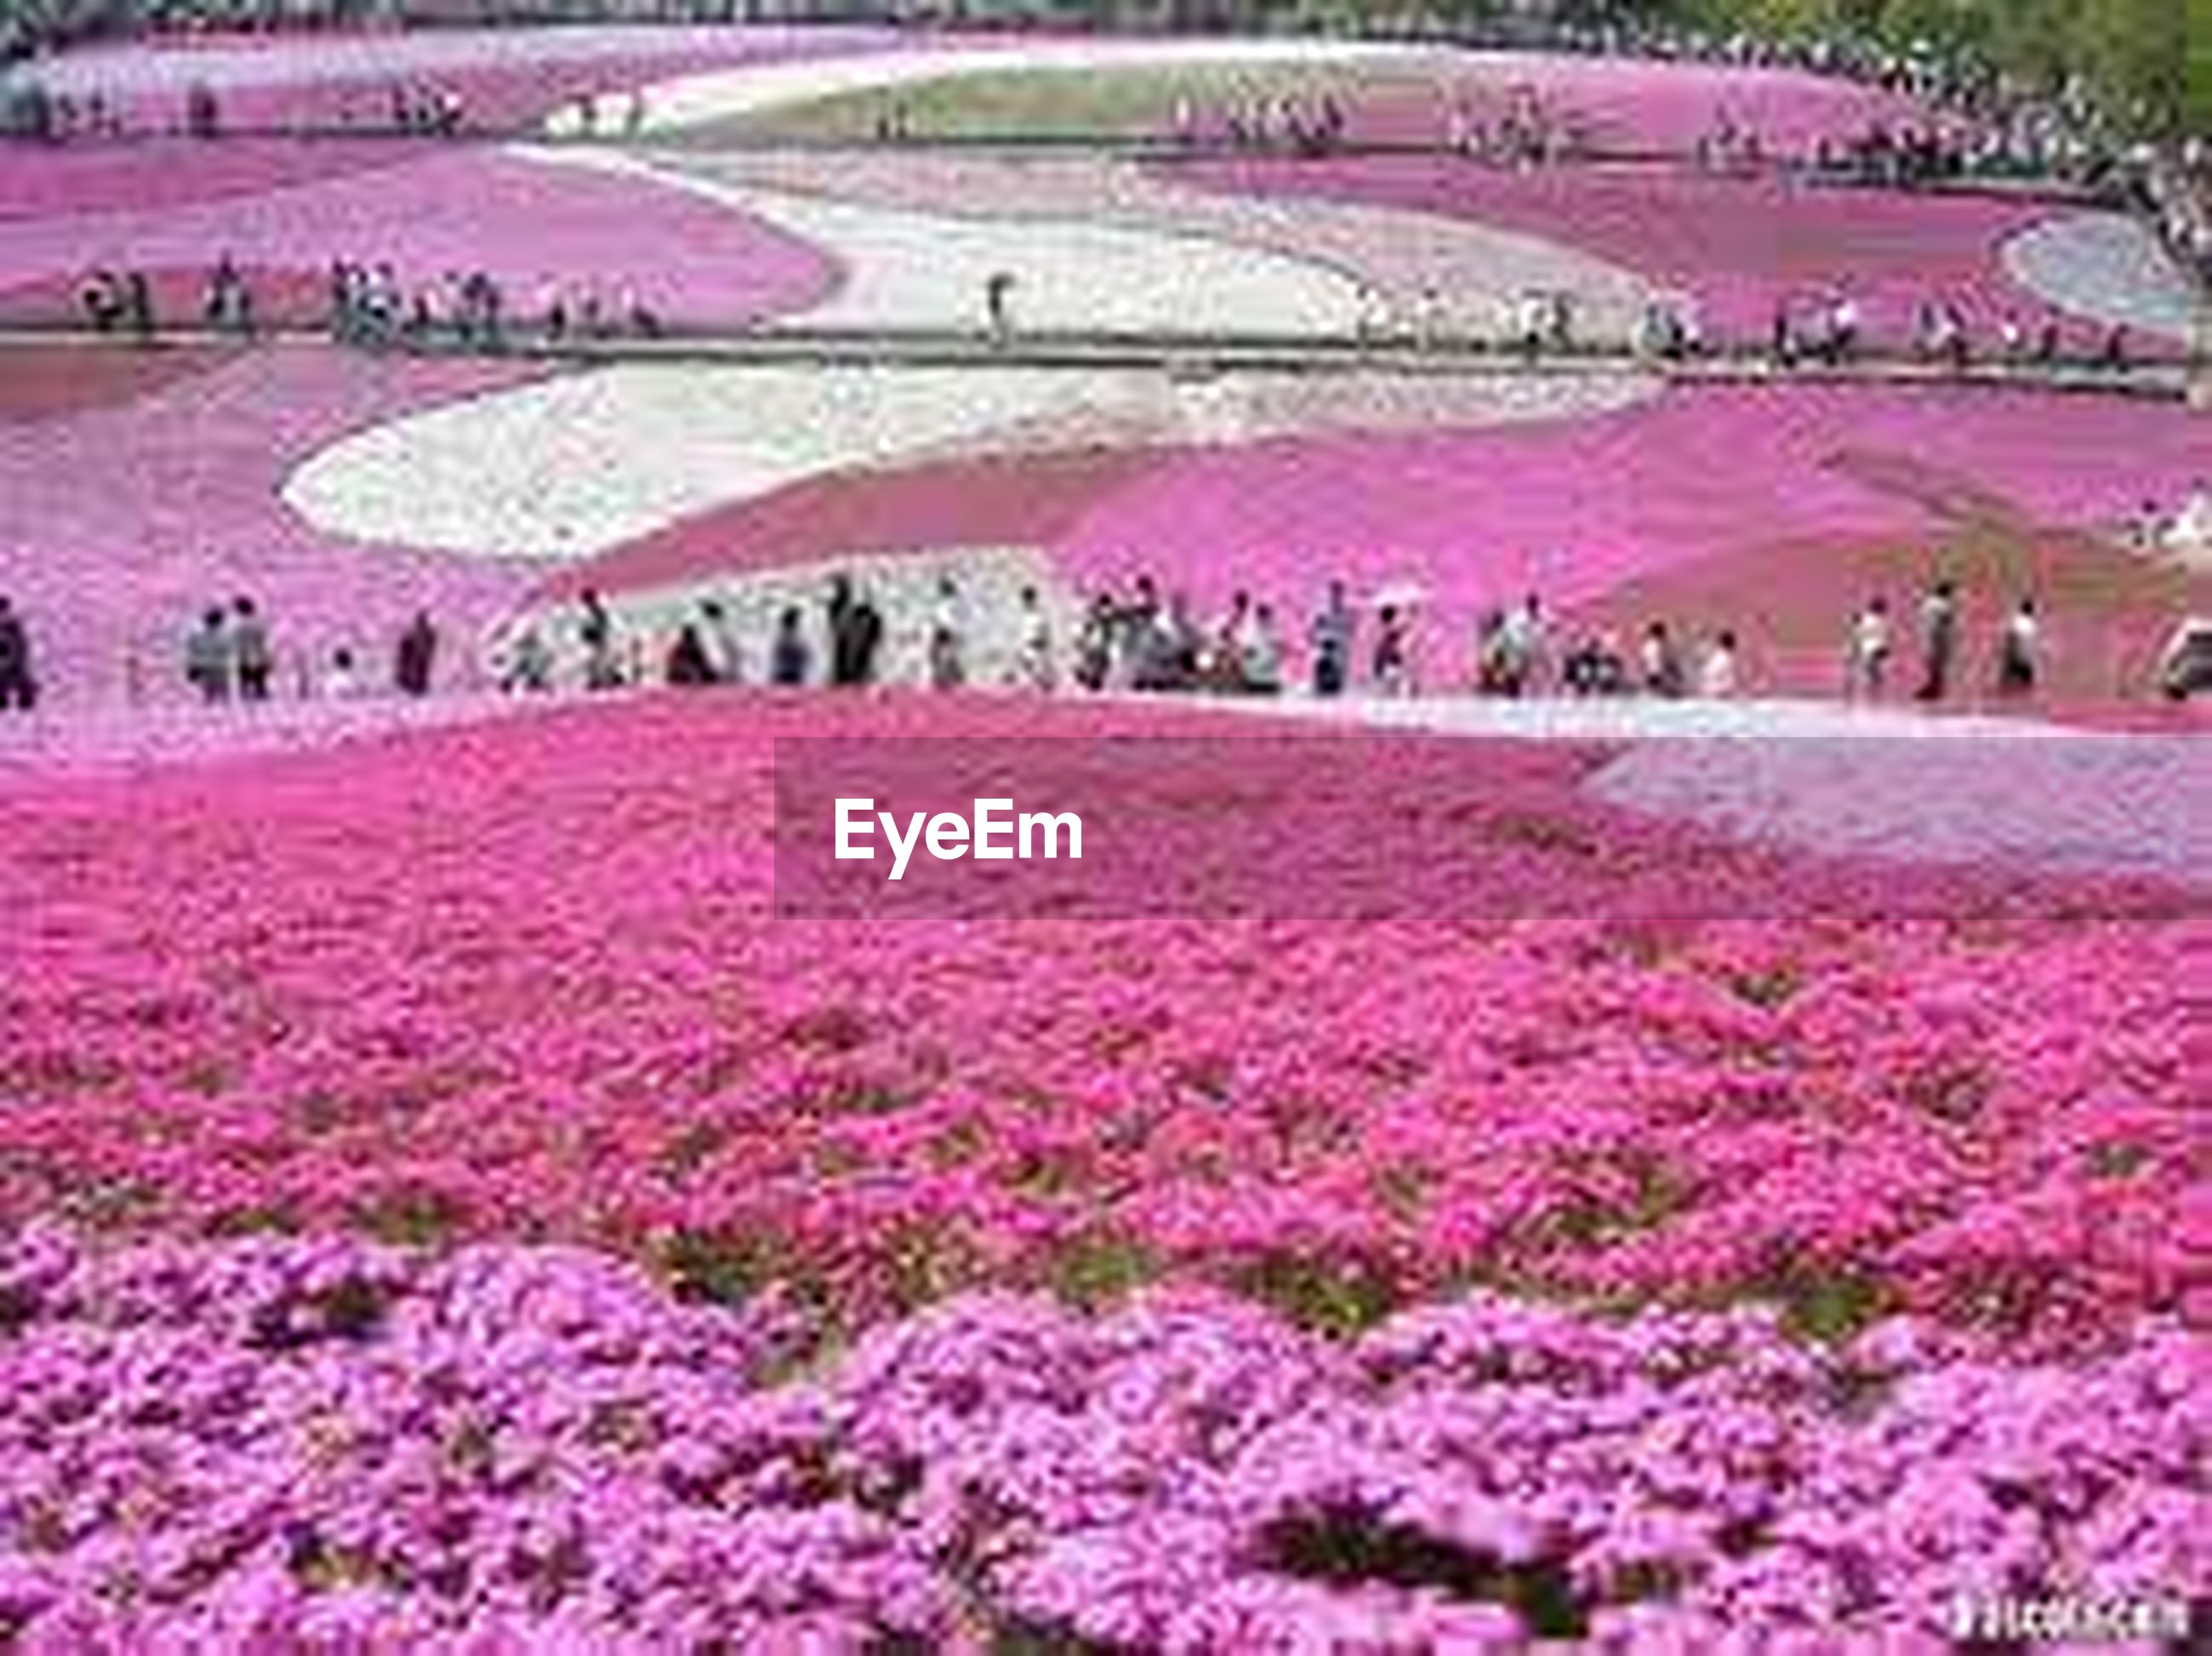 flower, large group of people, pink color, freshness, park - man made space, fragility, growth, beauty in nature, mixed age range, crowd, tree, nature, high angle view, landscape, field, person, blooming, outdoors, flowerbed